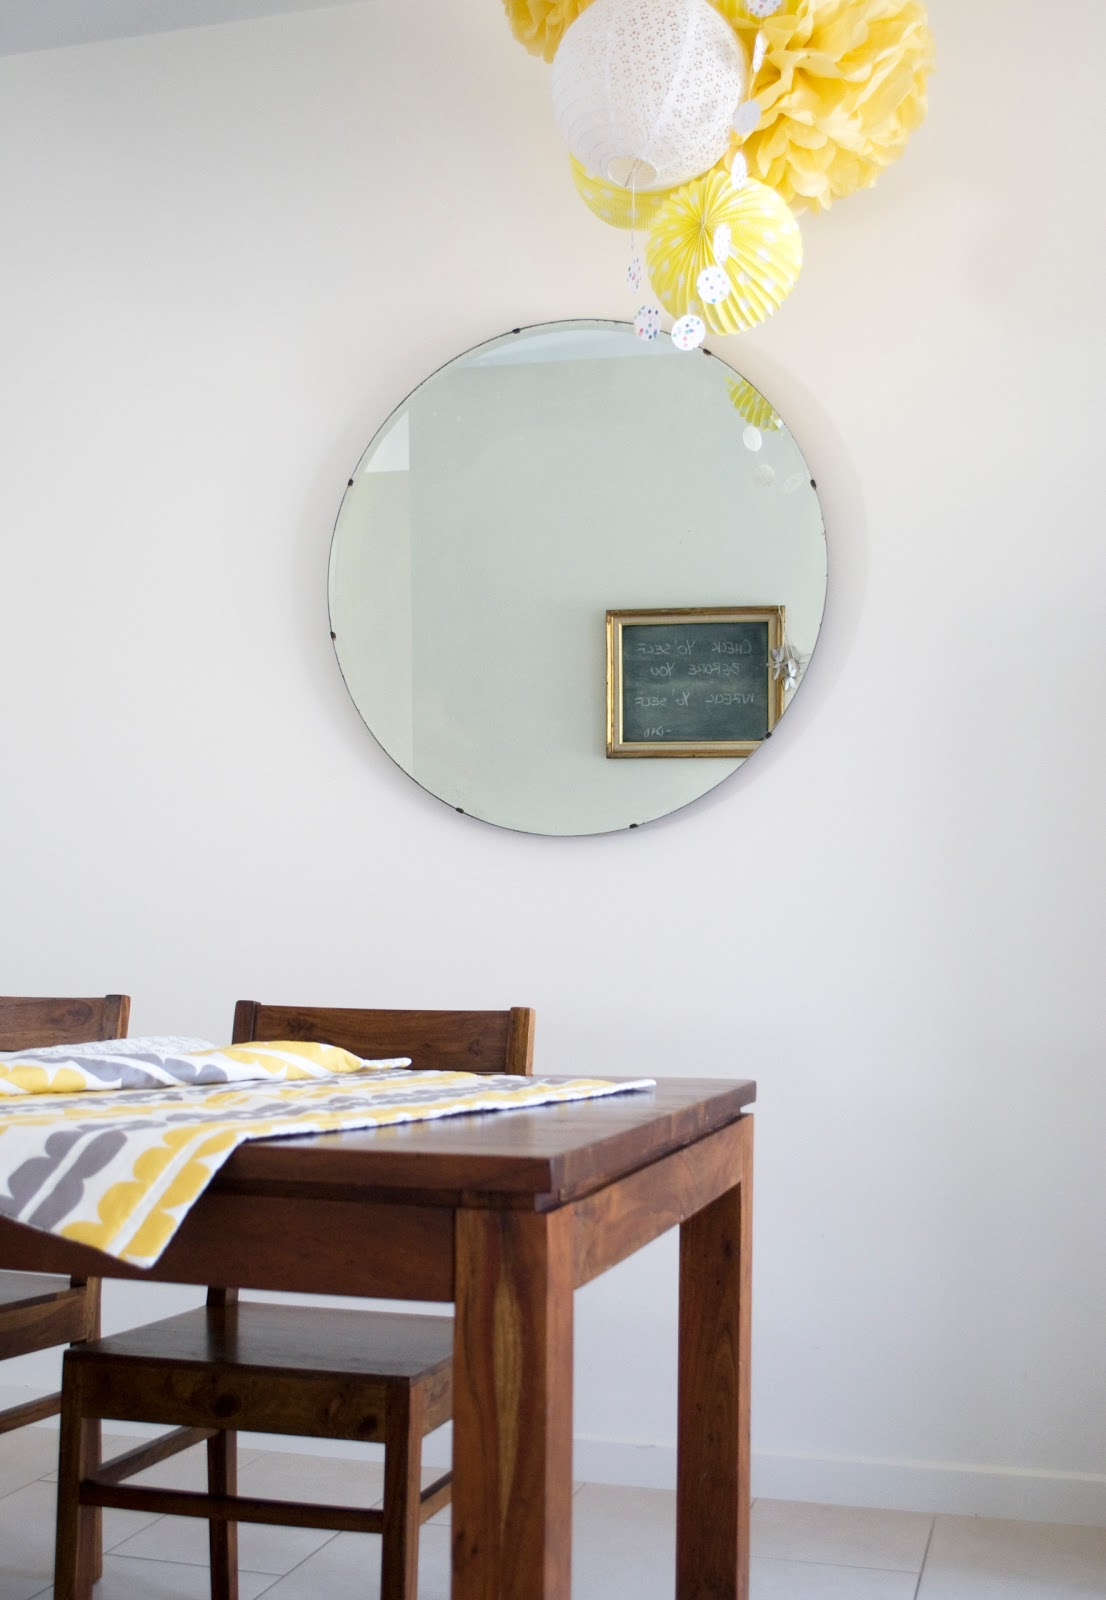 Grace Designs Decor for the Home Thrifted Vintage Mirror